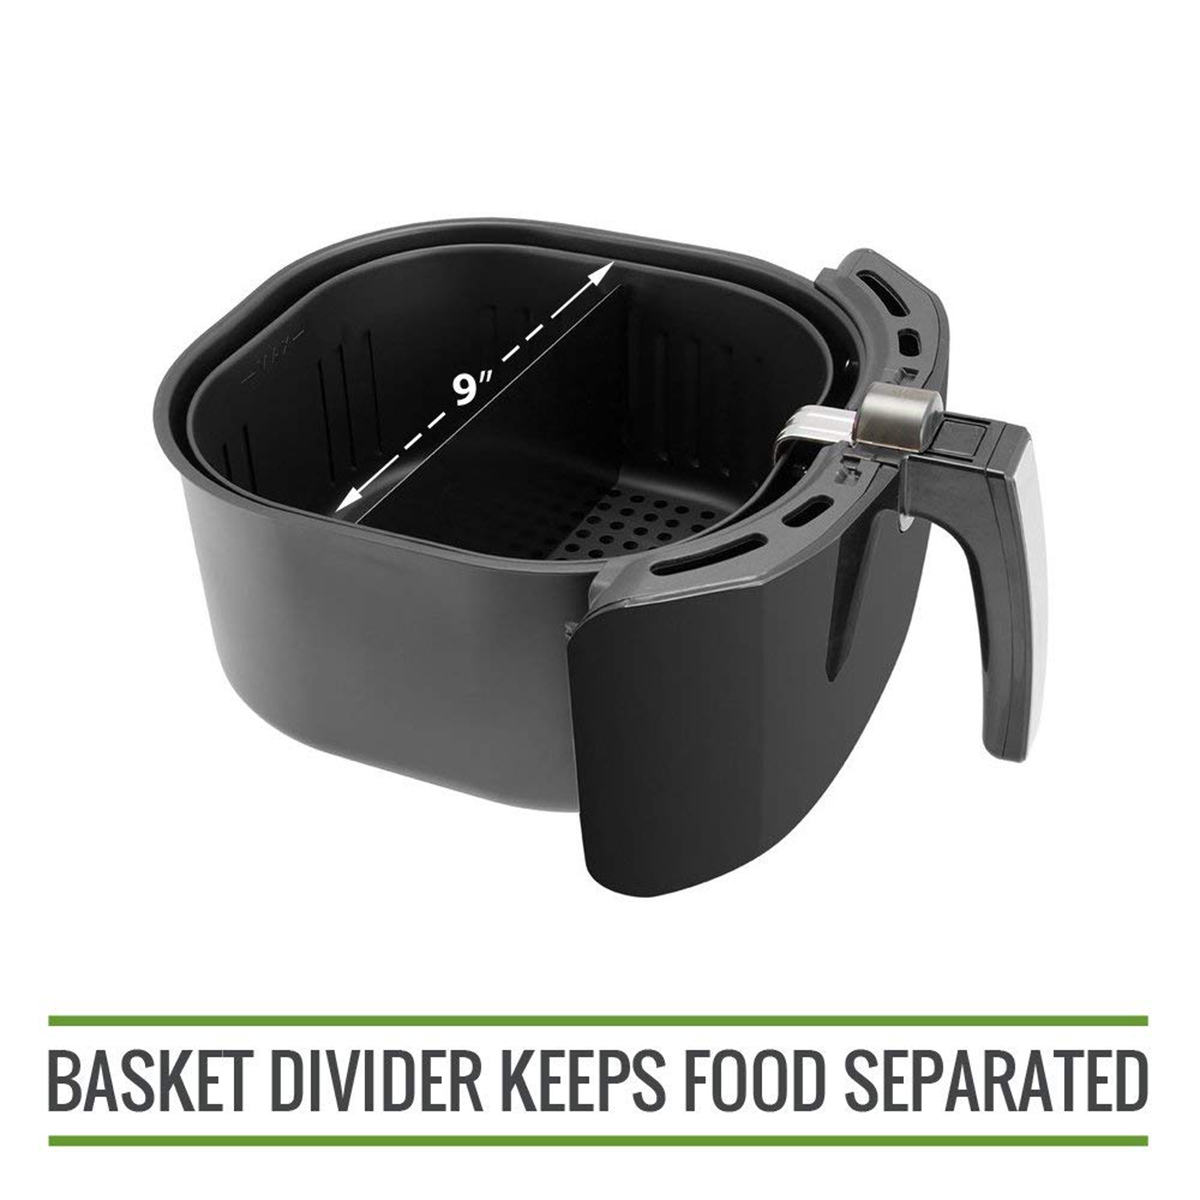 XL Air Fryer Cooking Divider Compatible With 9 Inch Air Fryer Baskets Air Fryer Basket Divider Keeps Food Separated